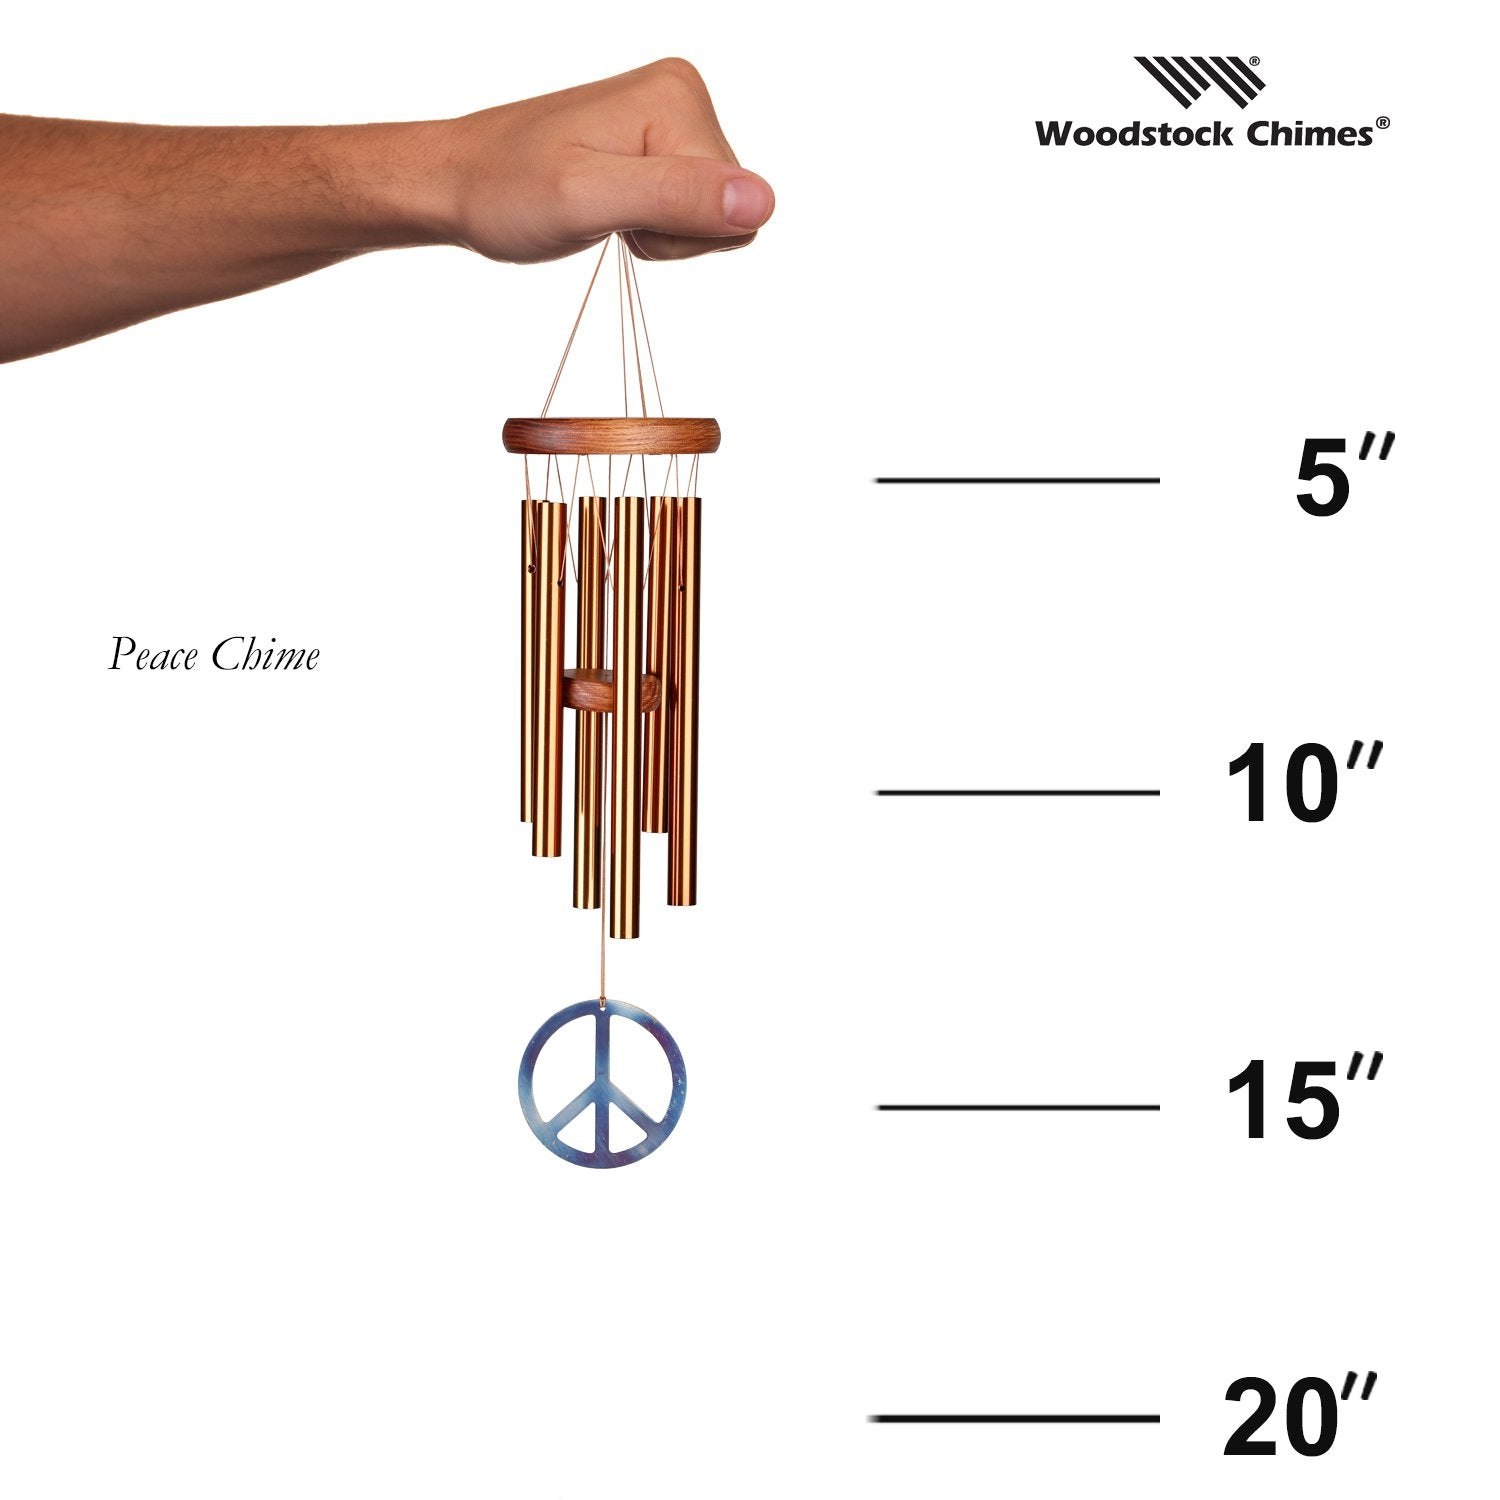 Peace Chime proportion image